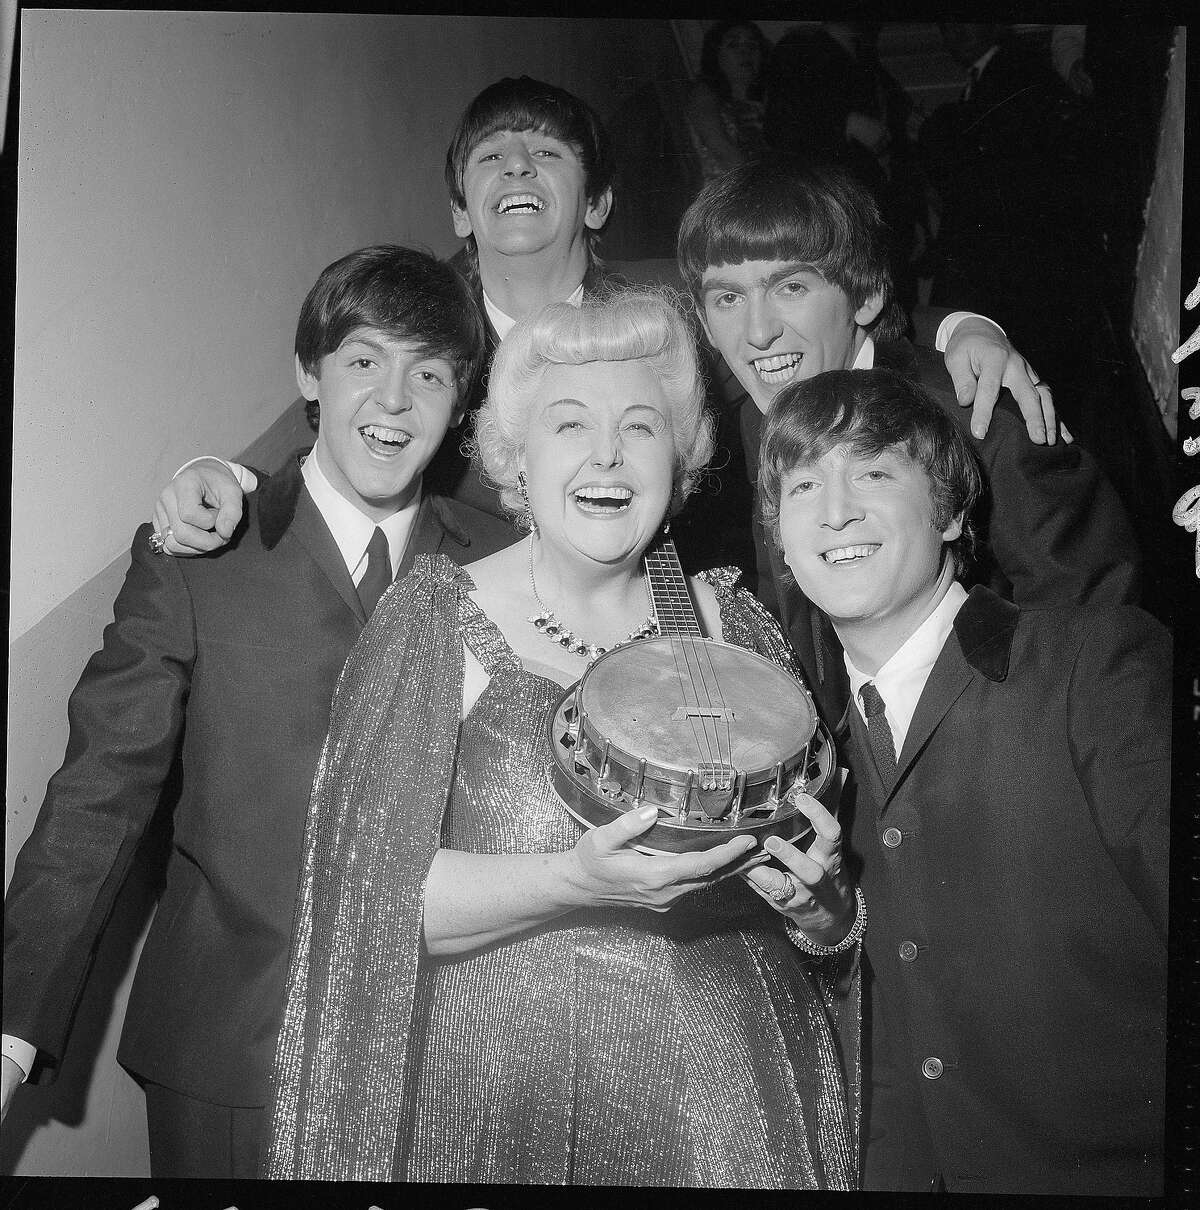 """The Beatles take a break backstage with singer and banjo player Tessie O'Shea who is probably best known for the song """"Two Ton Tessie from Tennessee,"""" despite being Welsh."""